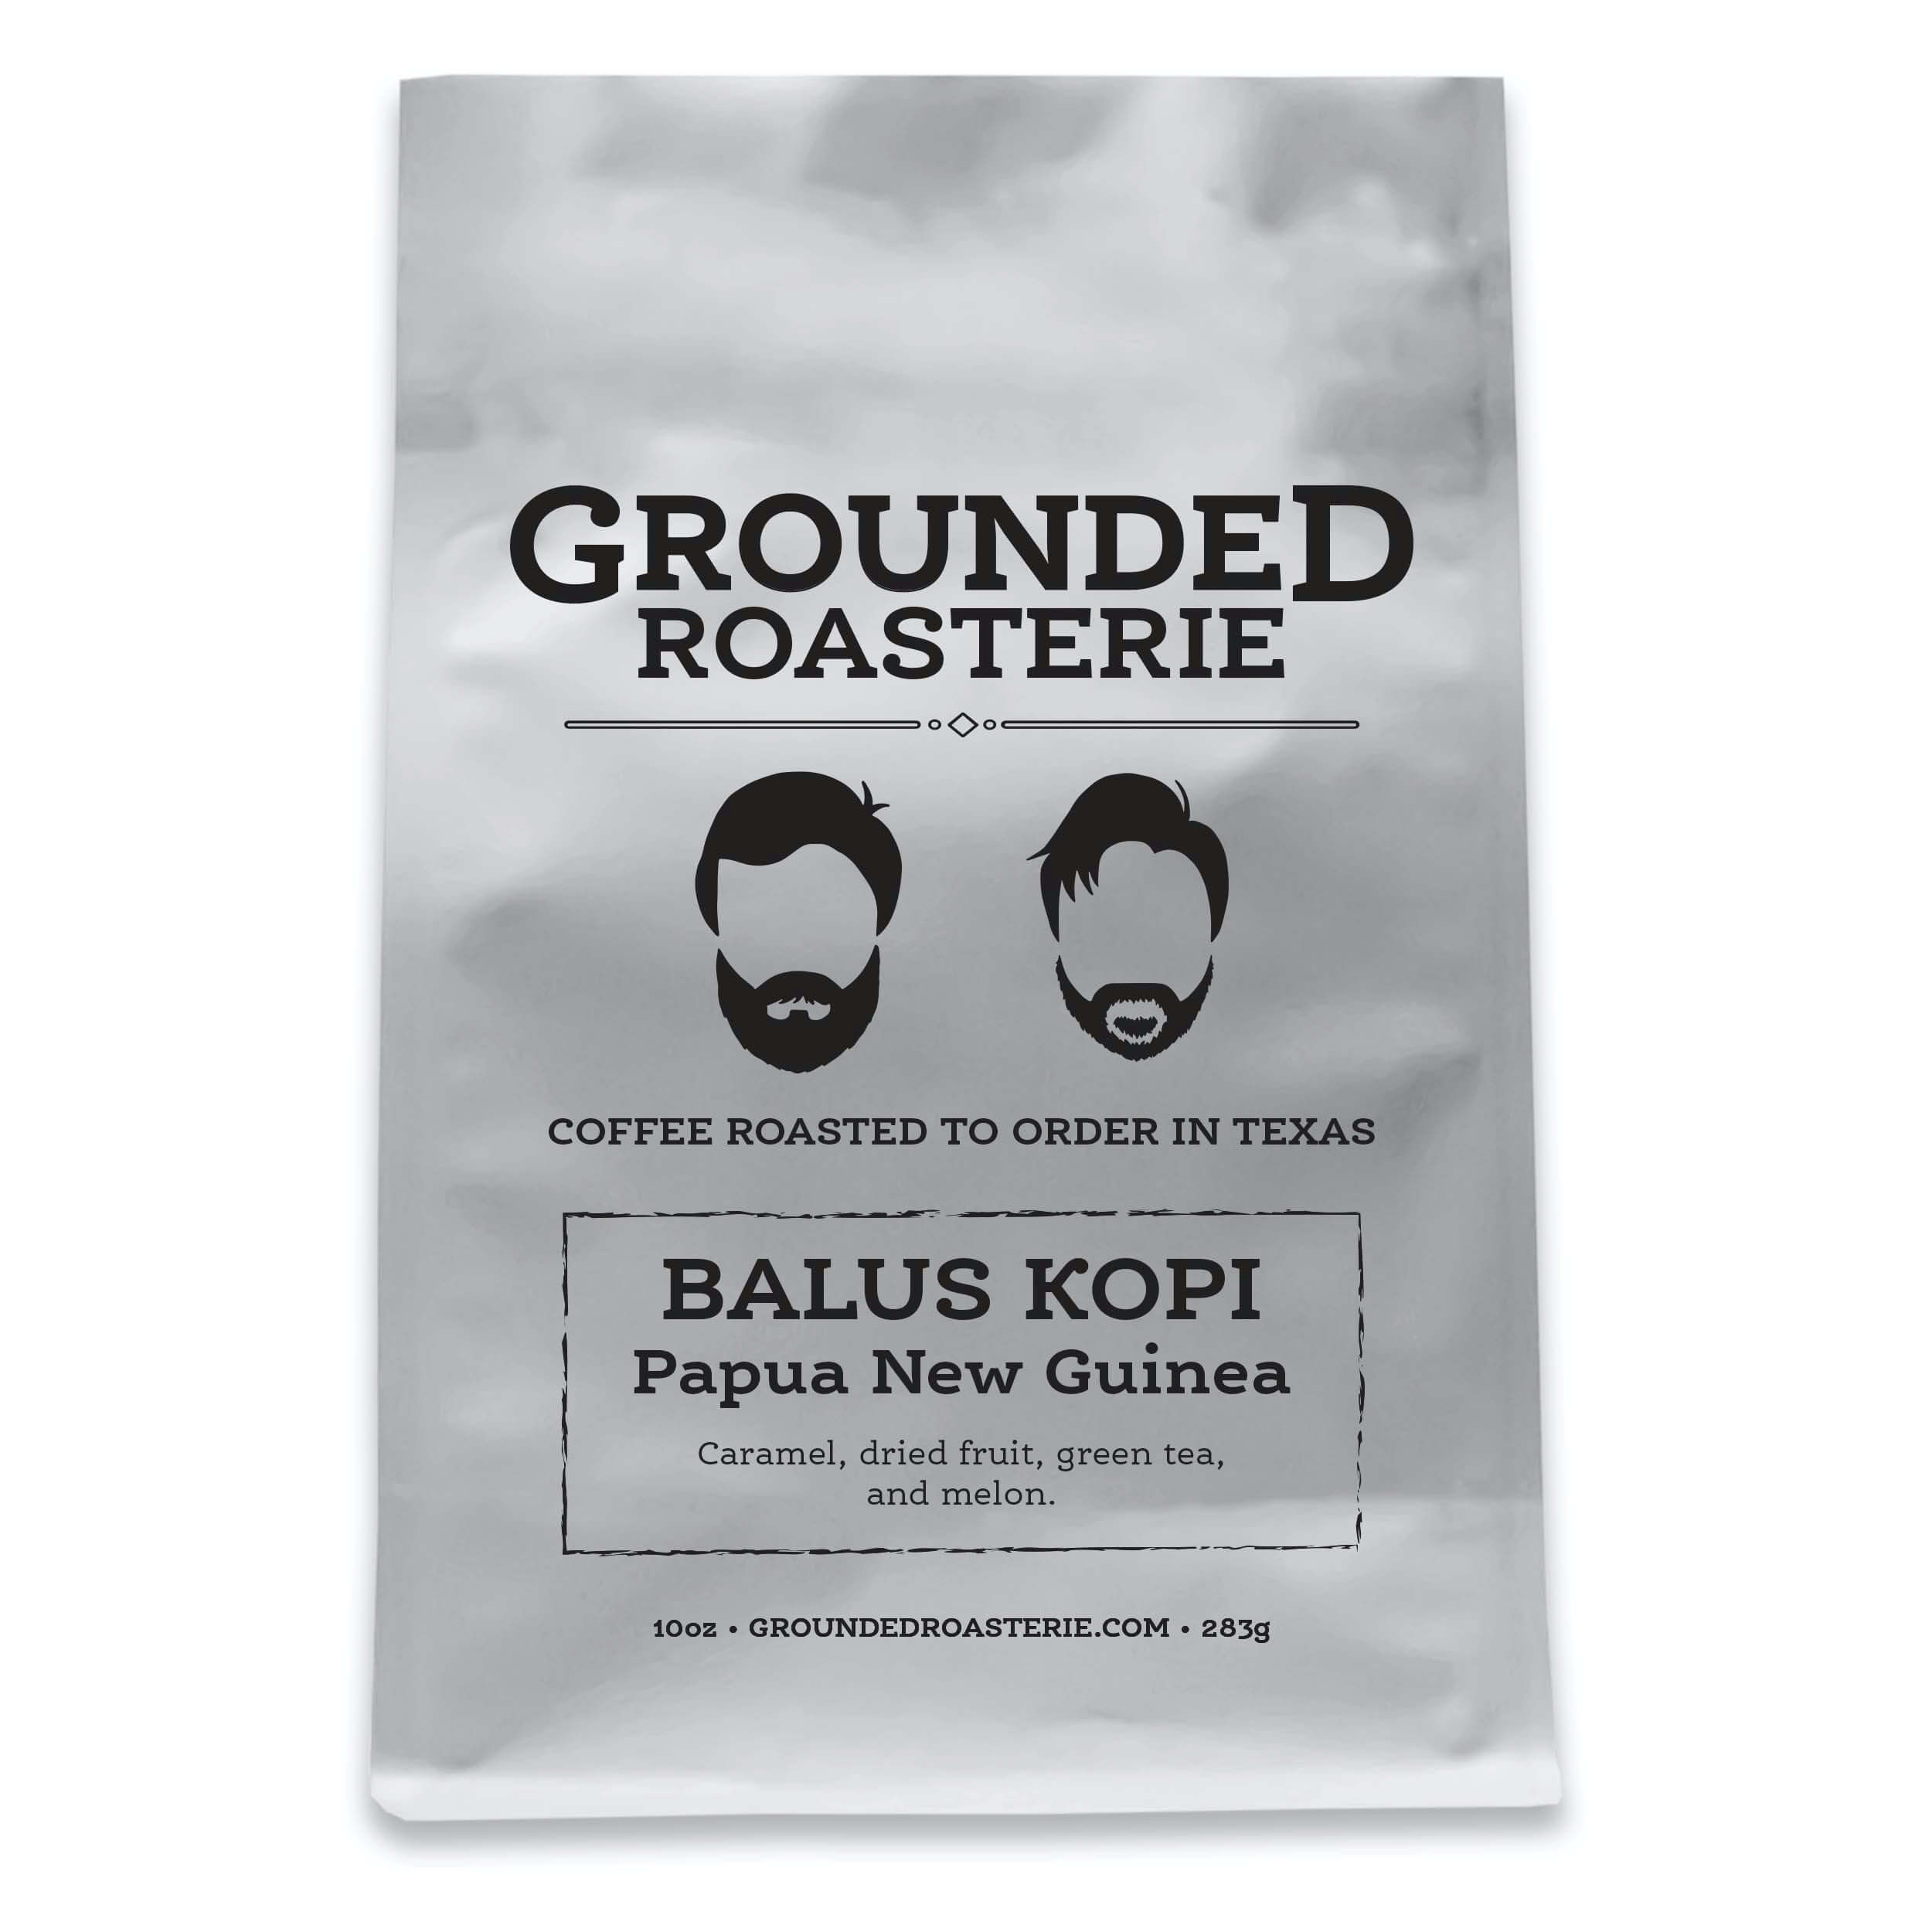 Papua New Guinea Balus Kopi from Grounded Roasterie